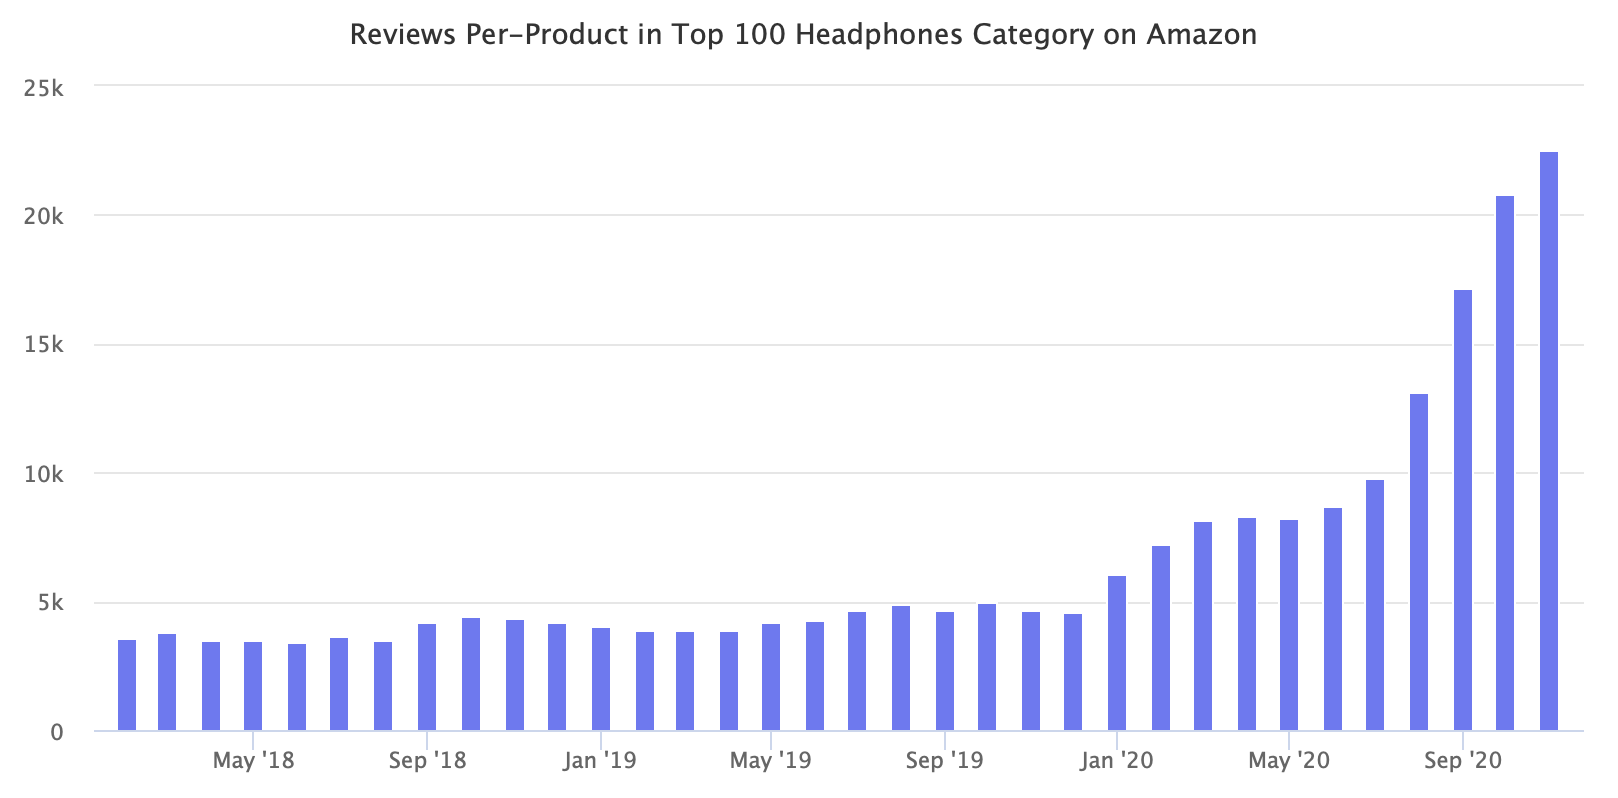 Reviews Per-Product in Top 100 Headphones Category on Amazon